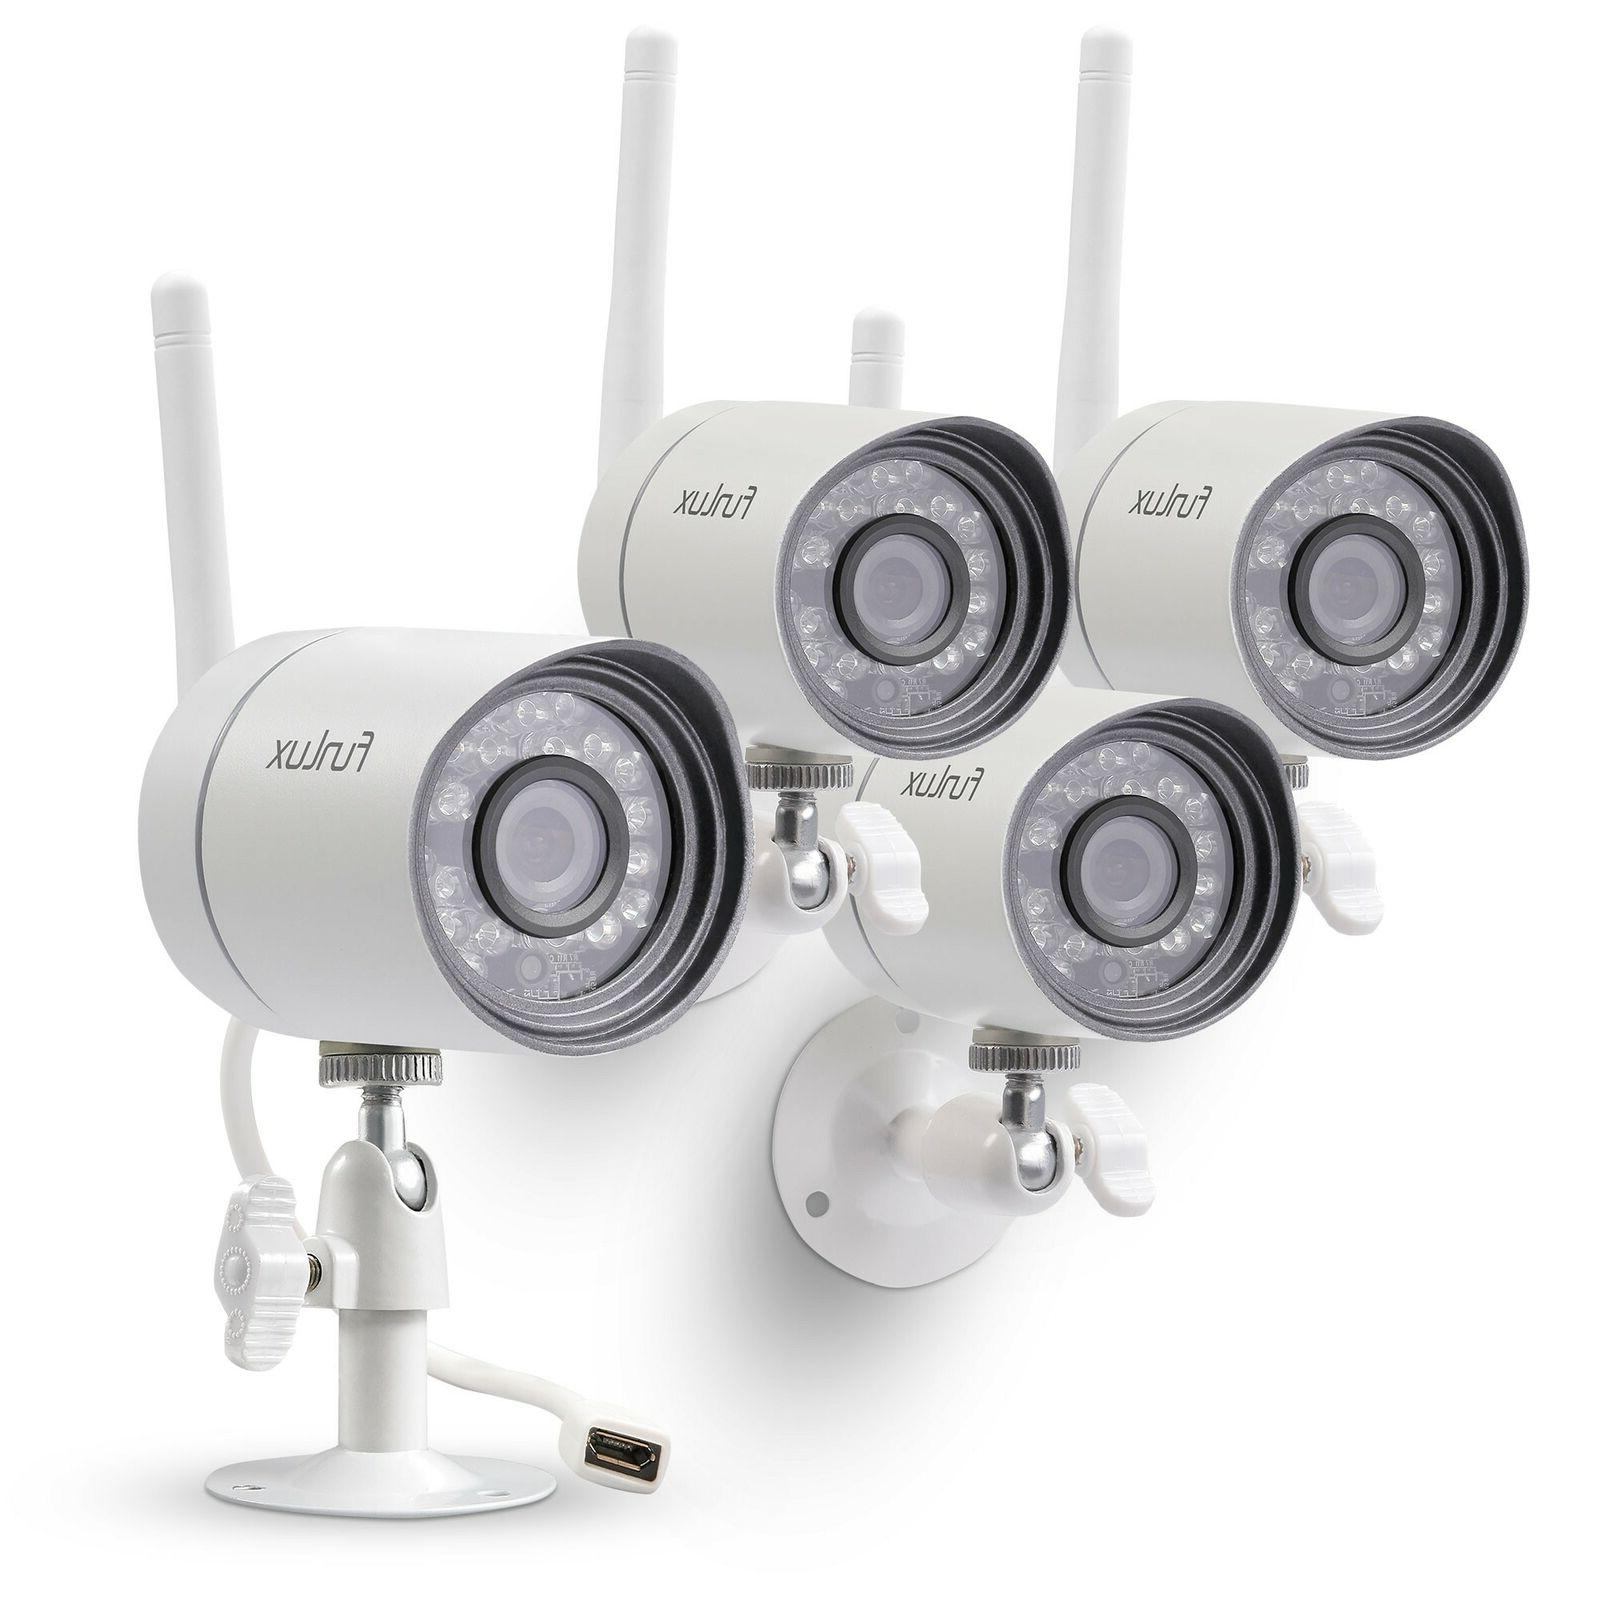 funlux wireless security camera system smart home